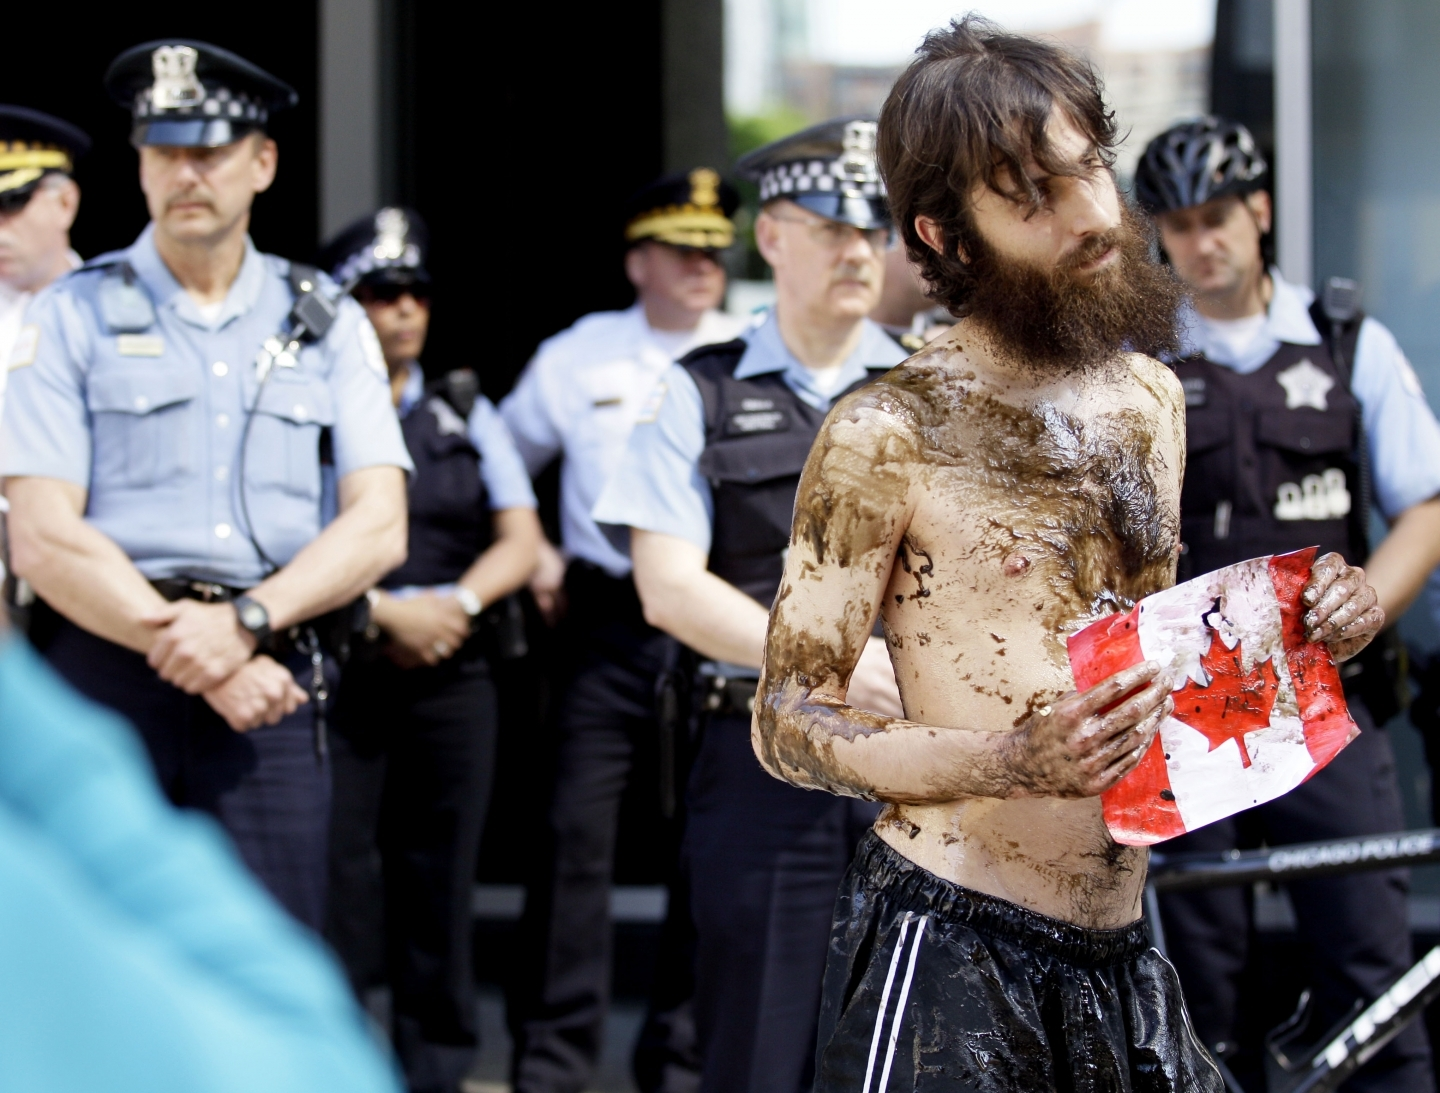 A demonstrator against pipelines at the Canadian Consulate in Chicago (AP Photo/ Nam Y. Huh)